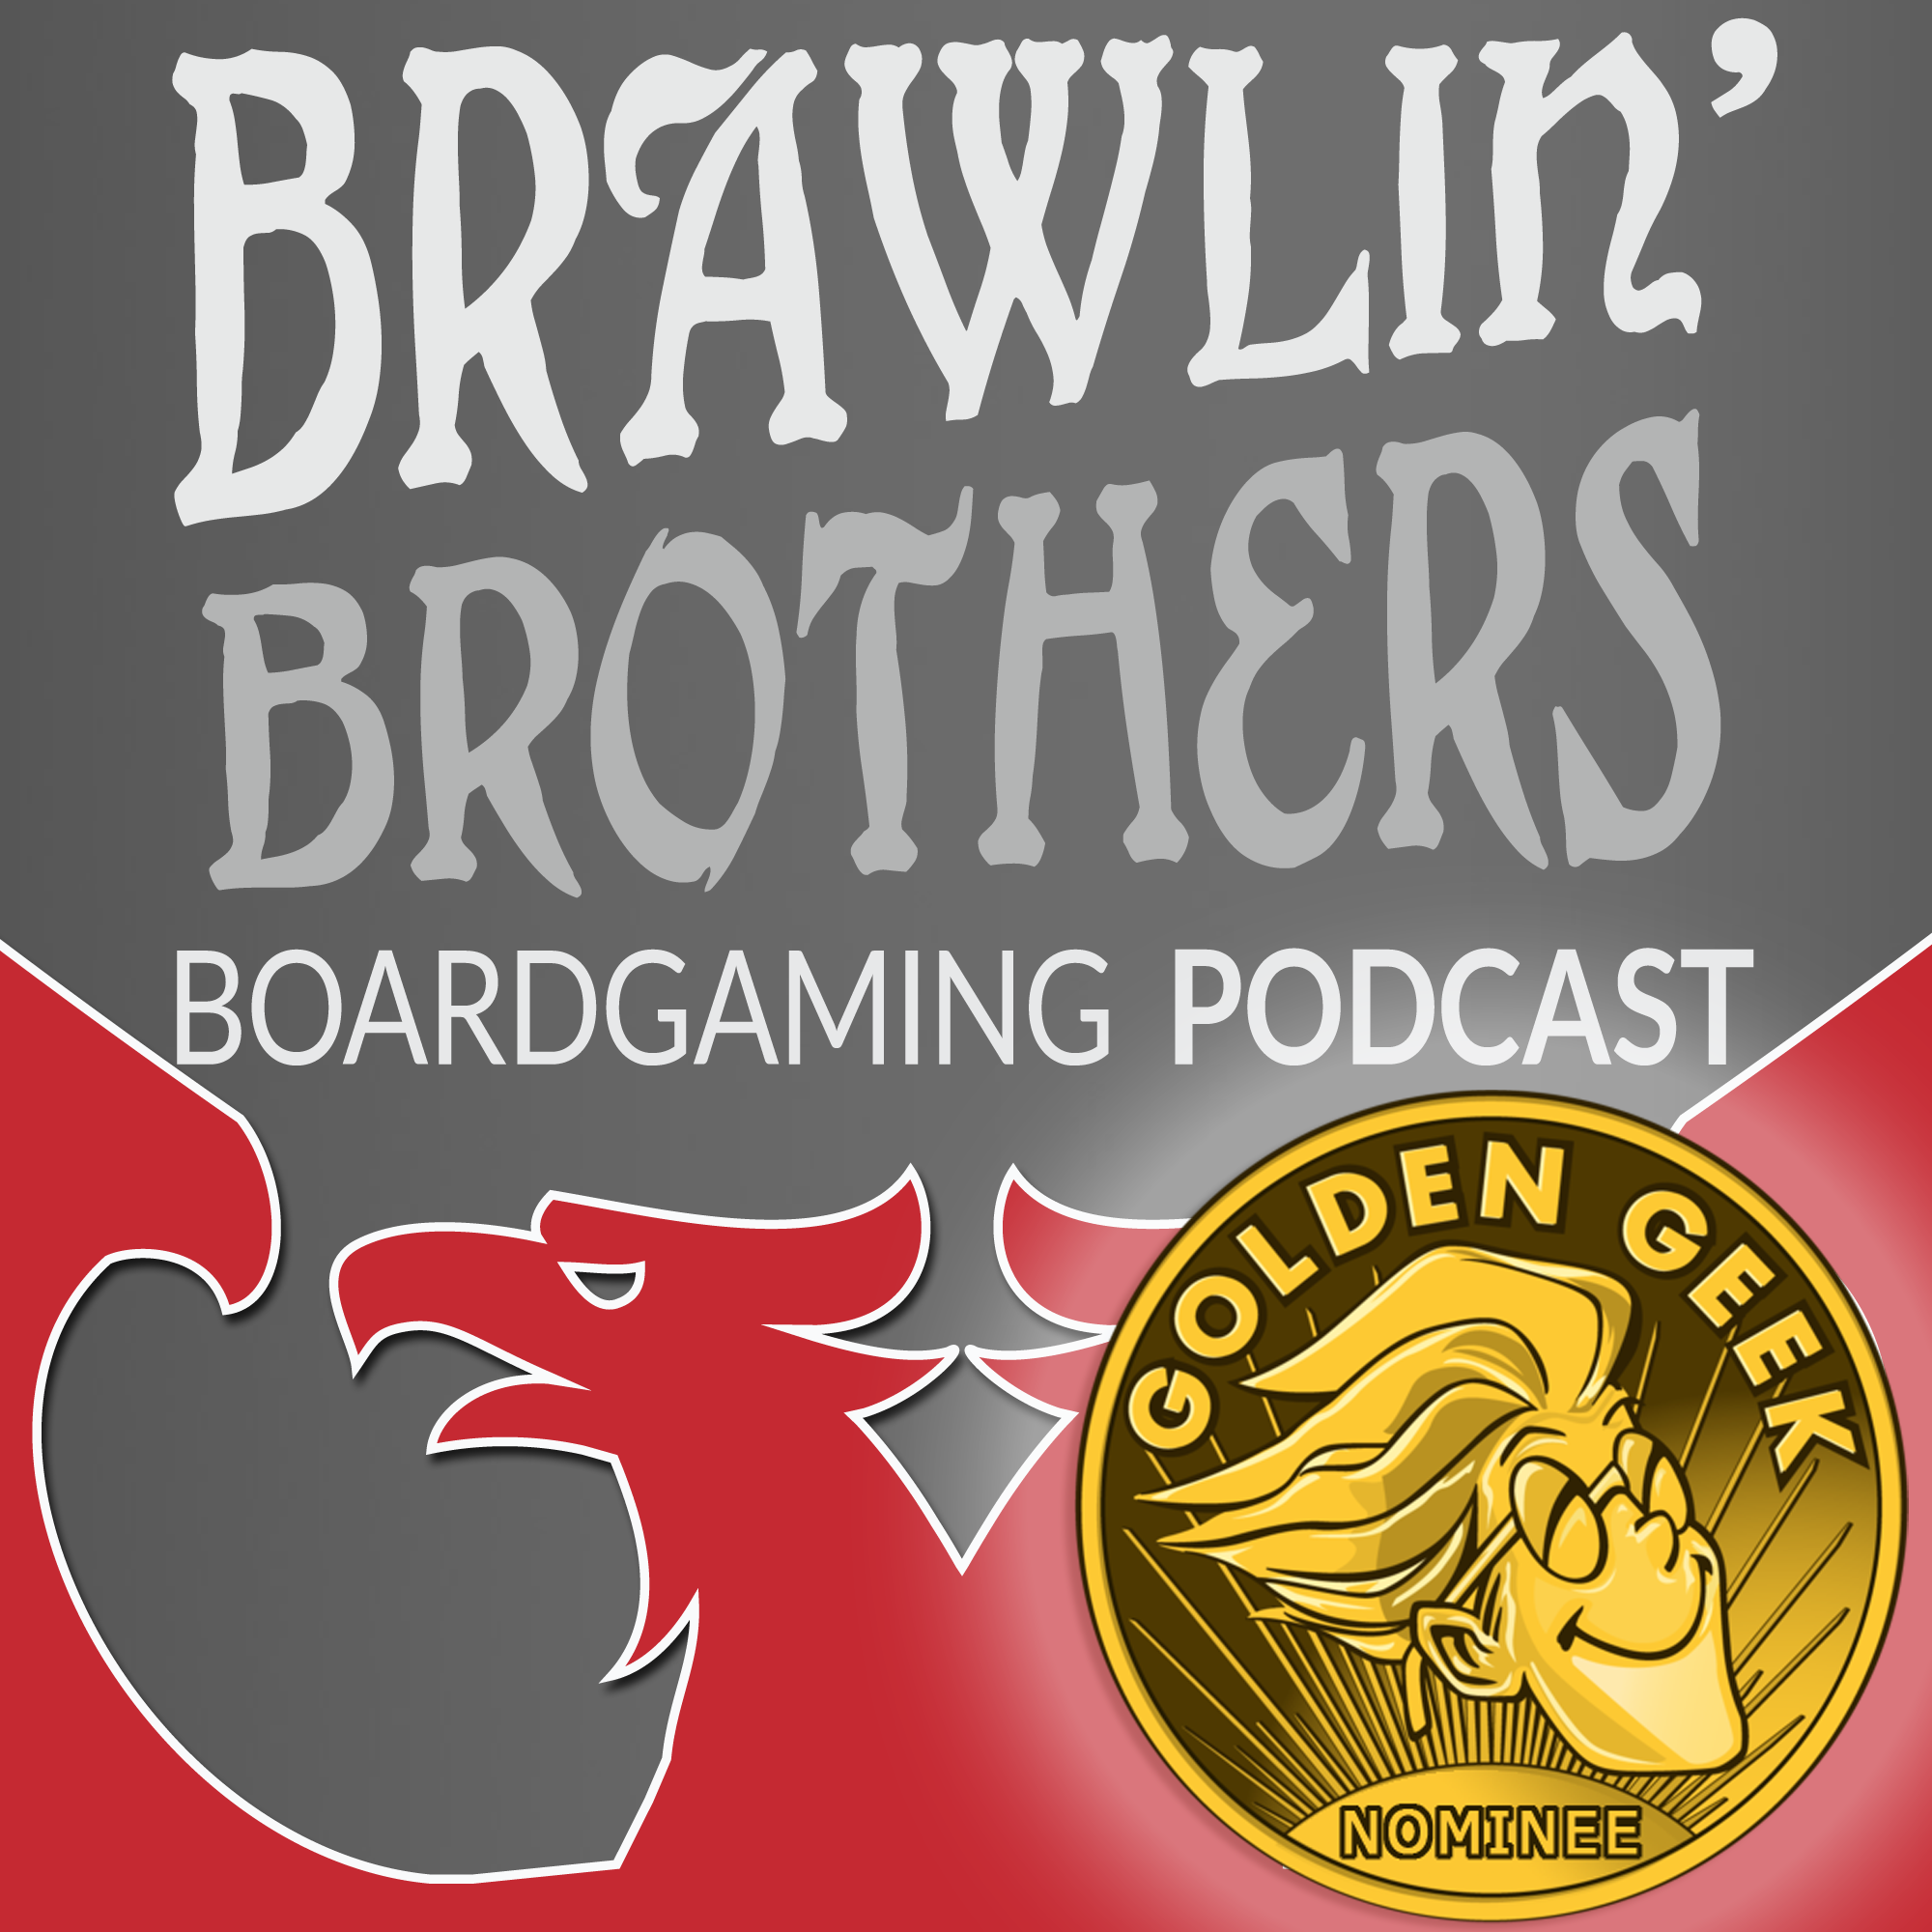 Brawling Brothers Boardgaming Podcast | Podbay